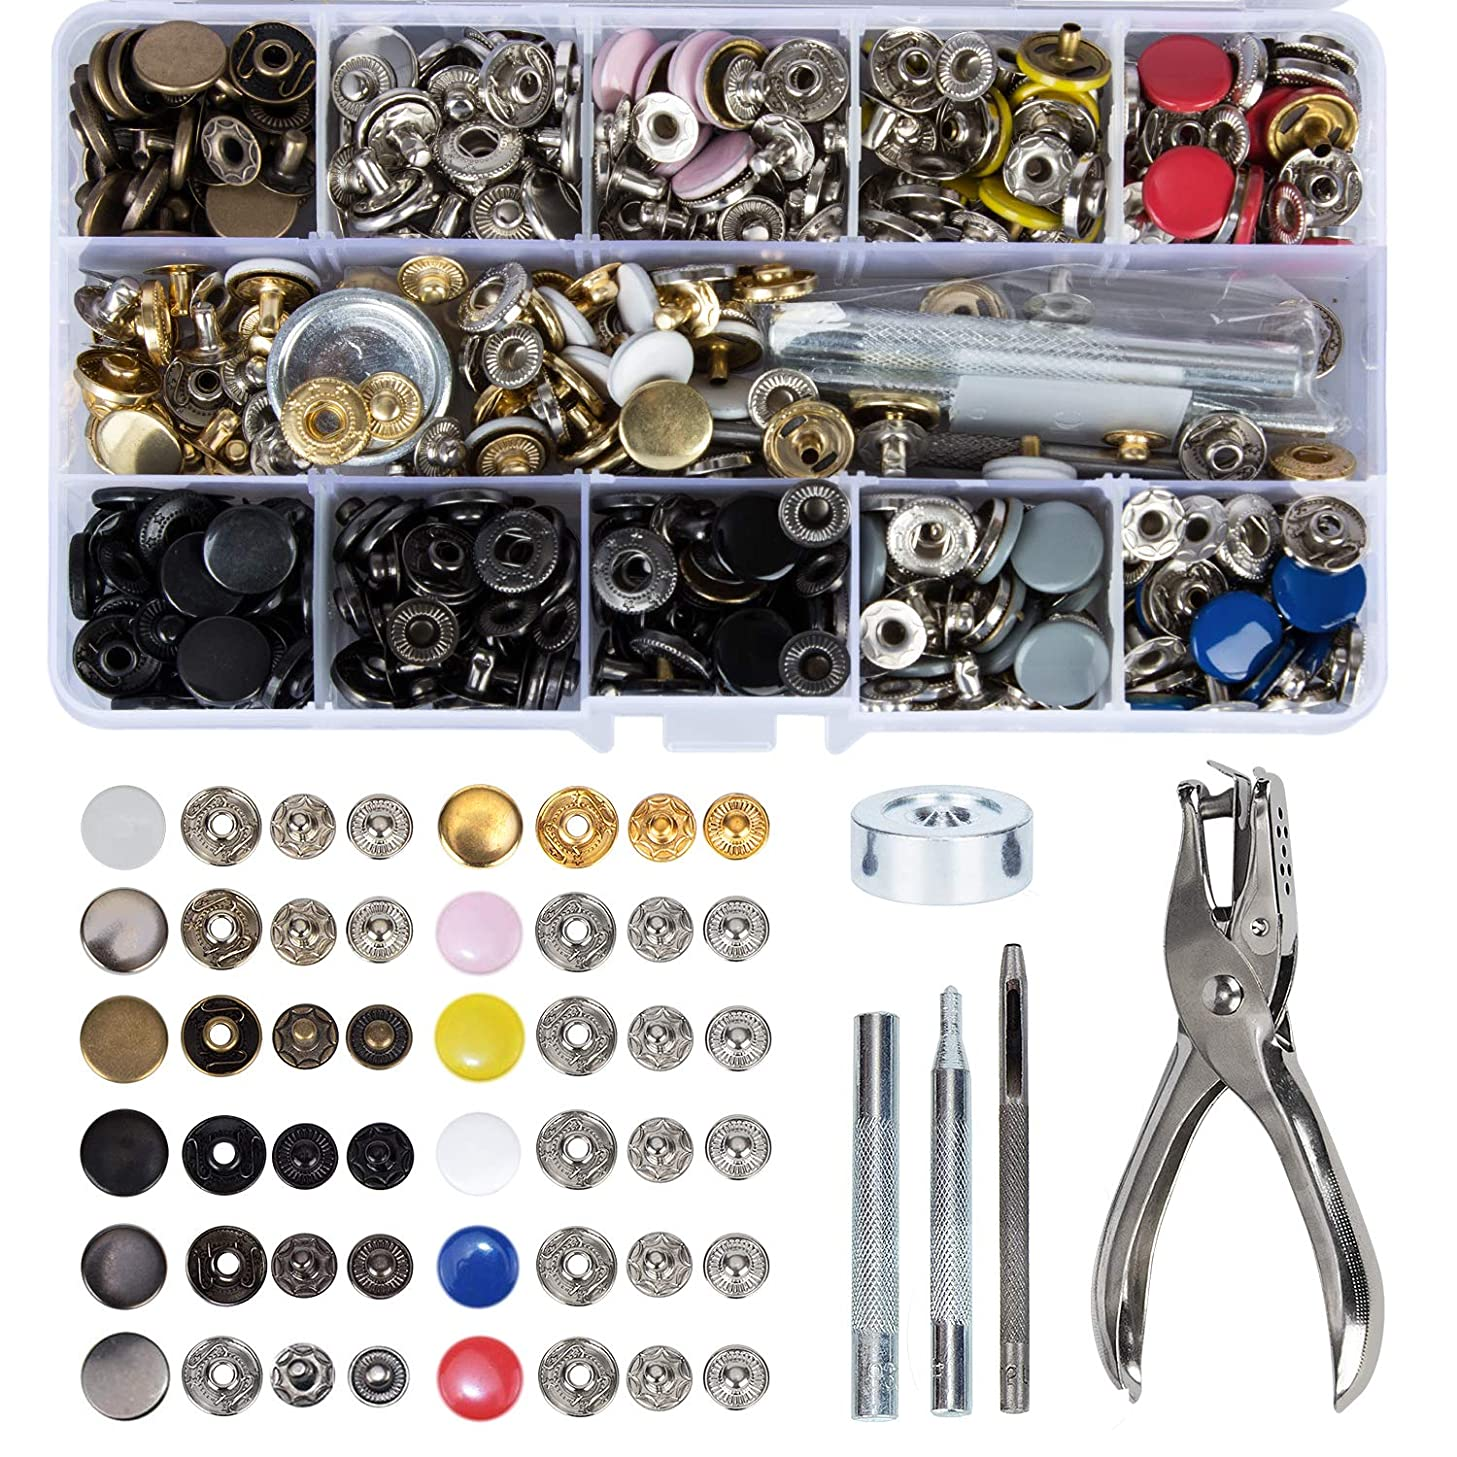 HOMEIDOL Snap Fastener Kit 12 Colors, 150 Sets Metal Snap On Buttons Set Press Studs with Fixing Tools for Thin Leather Bracelet, Shirt, Skirt, Jacket, Jeans, Bags Repair and Decoration